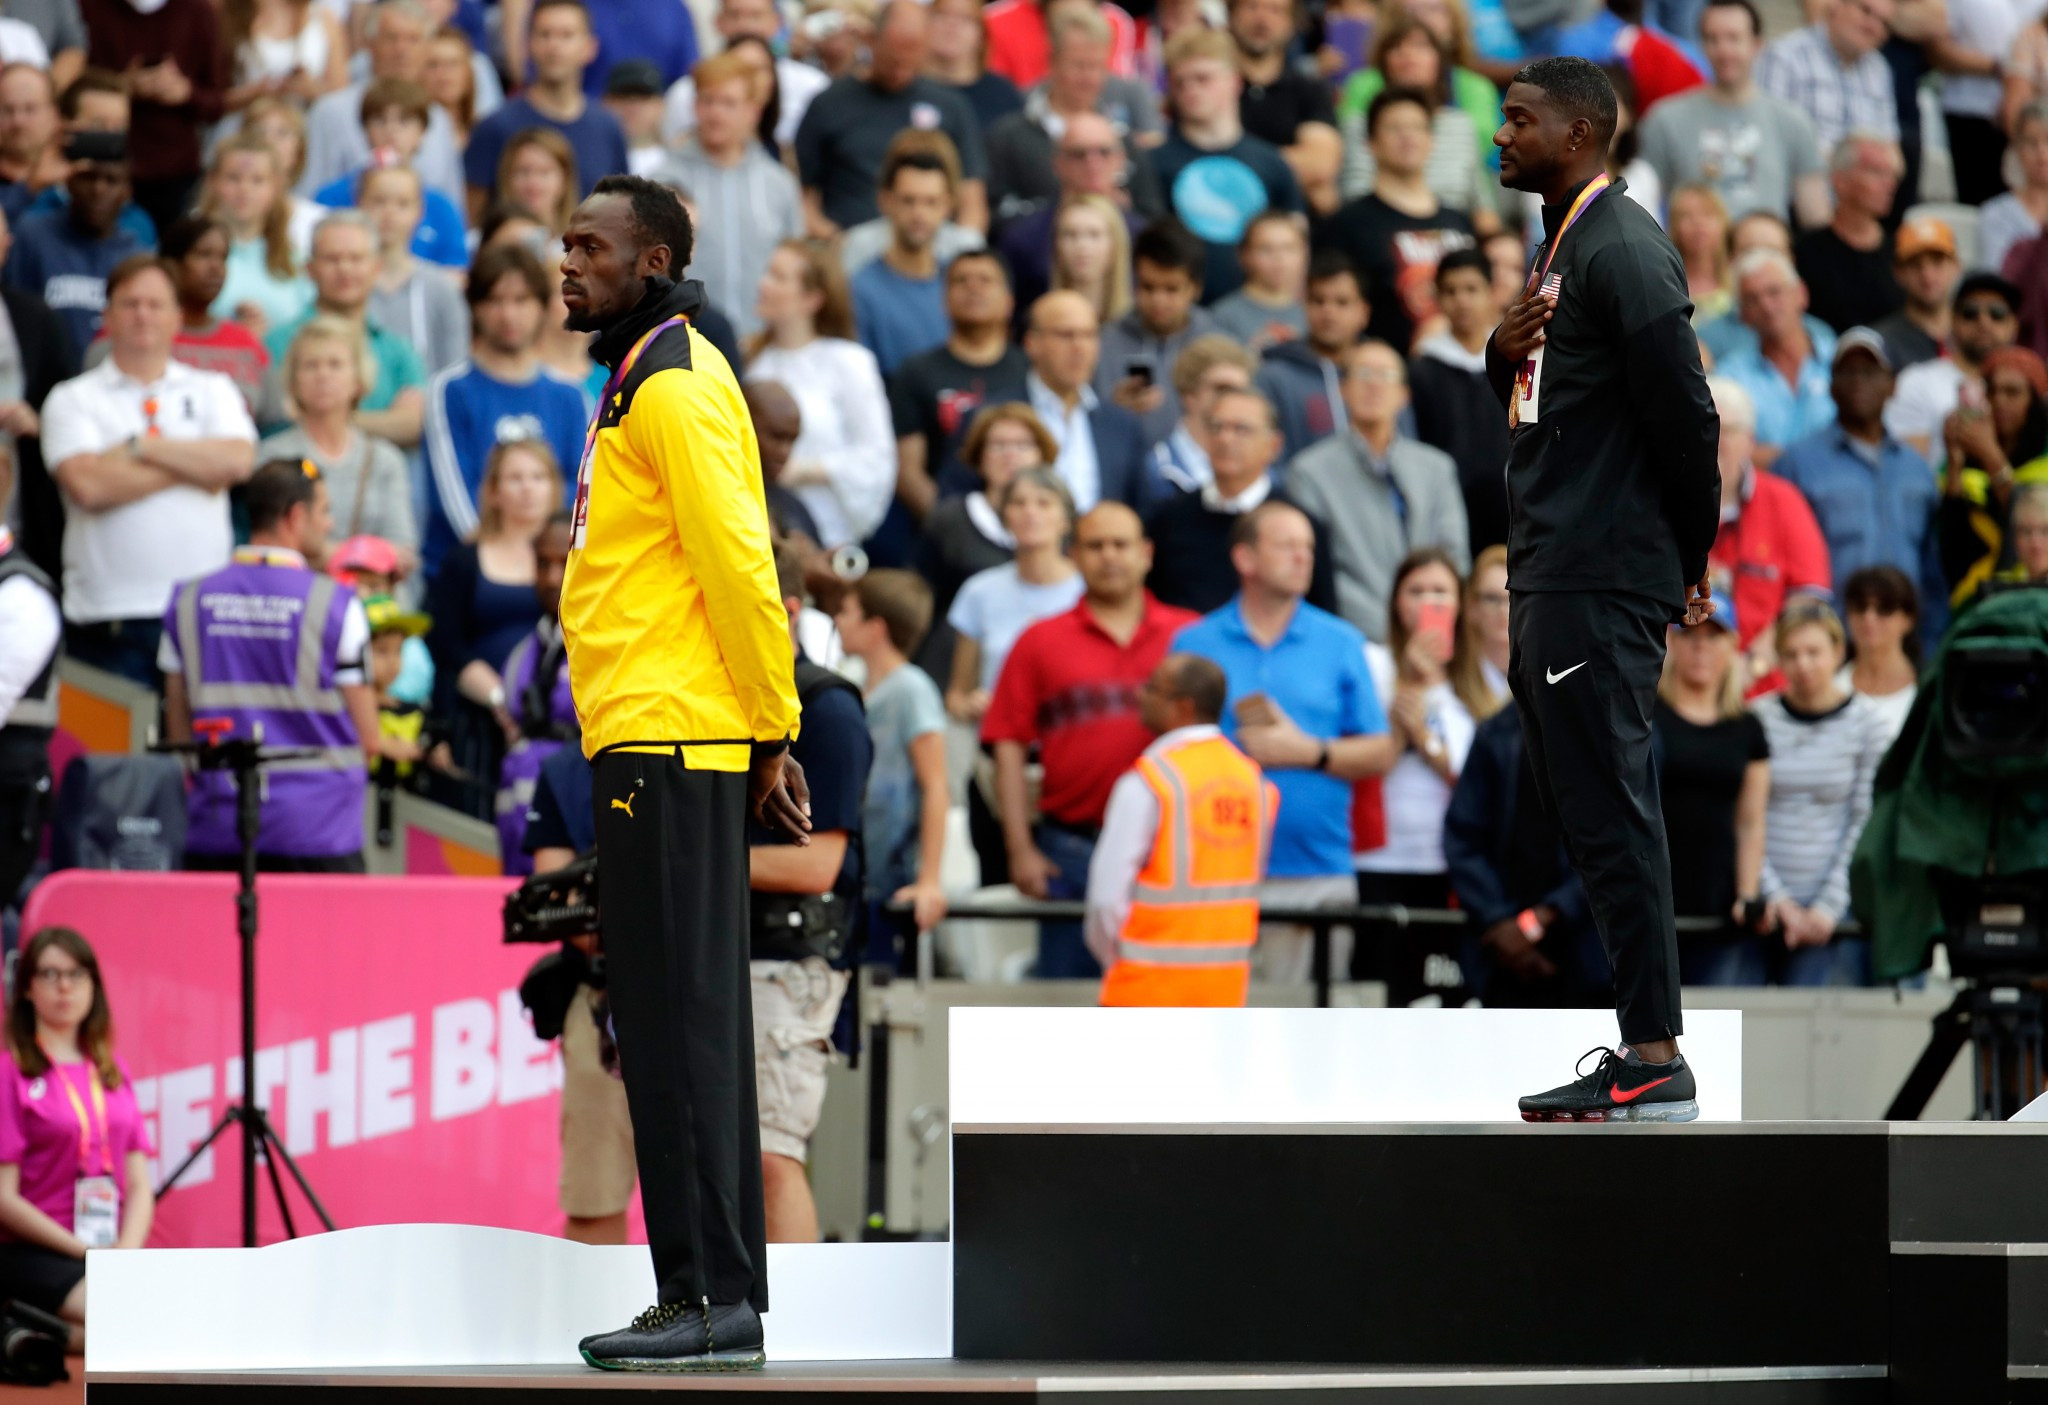 Justin Gatlin, centre, was booed when he was presented with his gold medal for victory in the 100 metres at the IAAF World Championships, with Usain Bolt, right, getting the bronze ©Getty Images